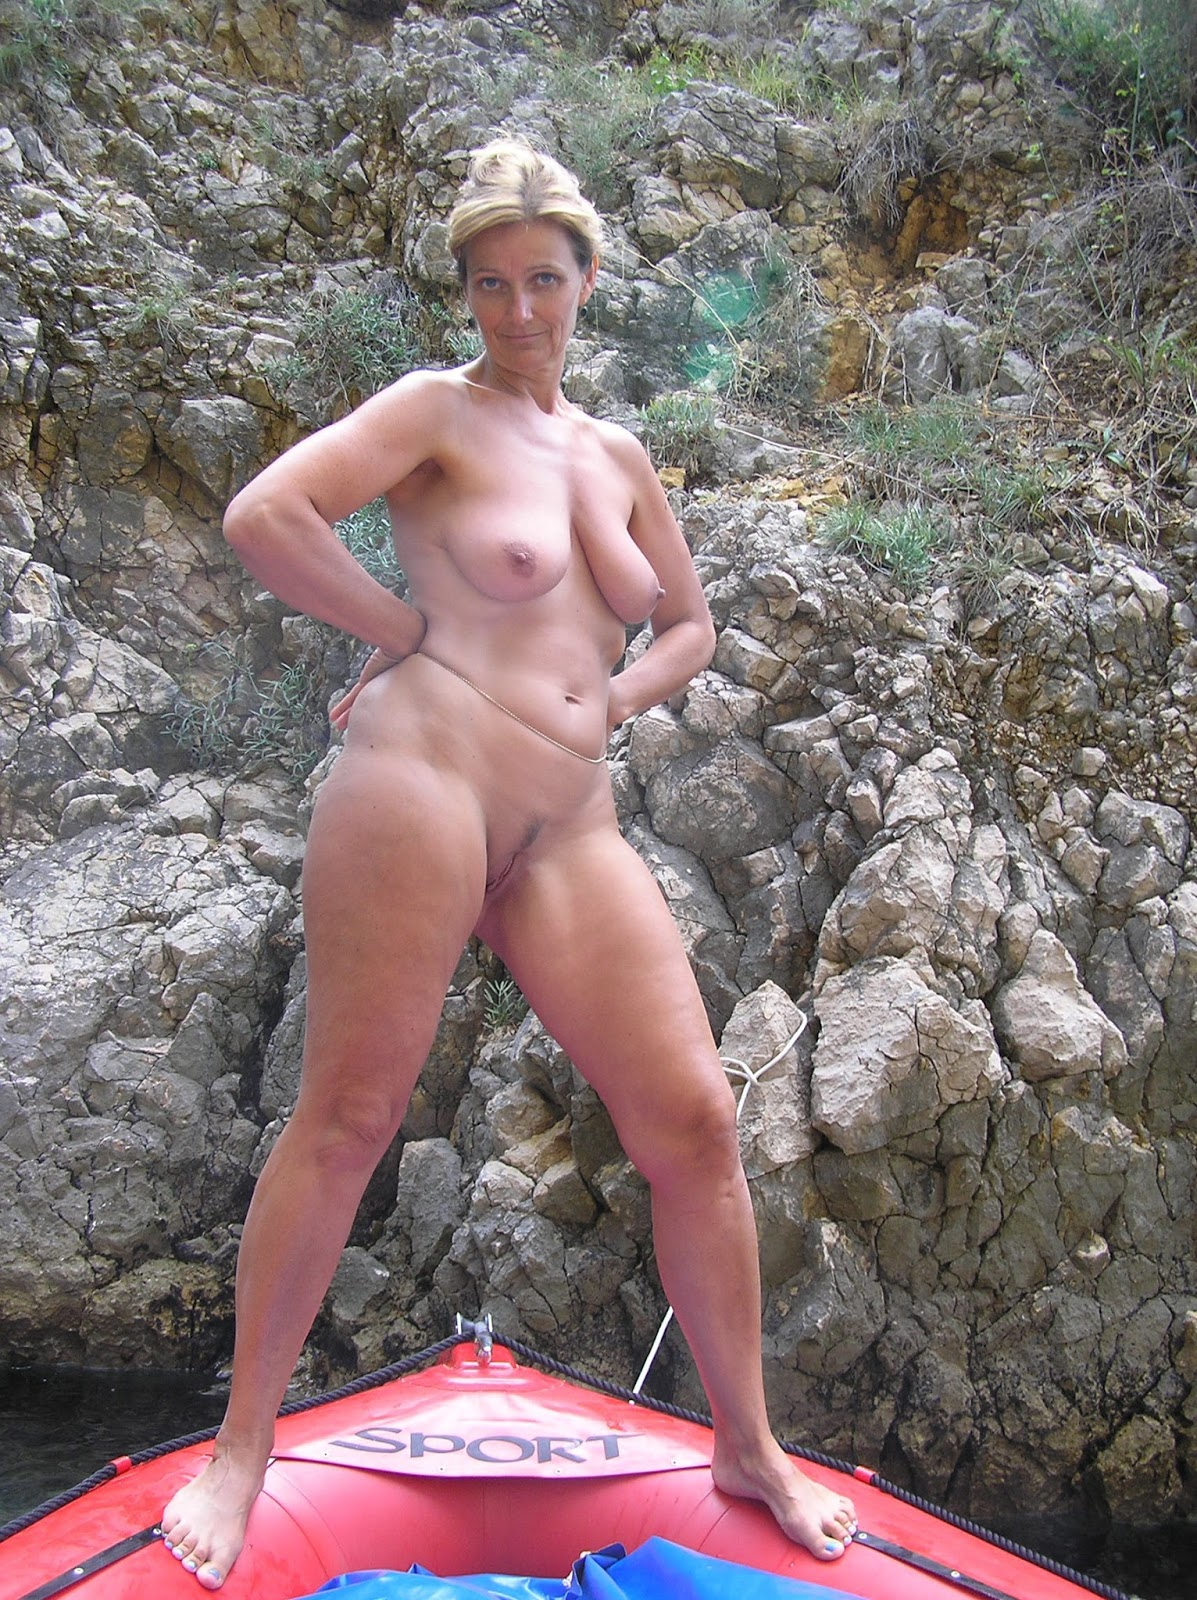 amateur naked fun video tumblr